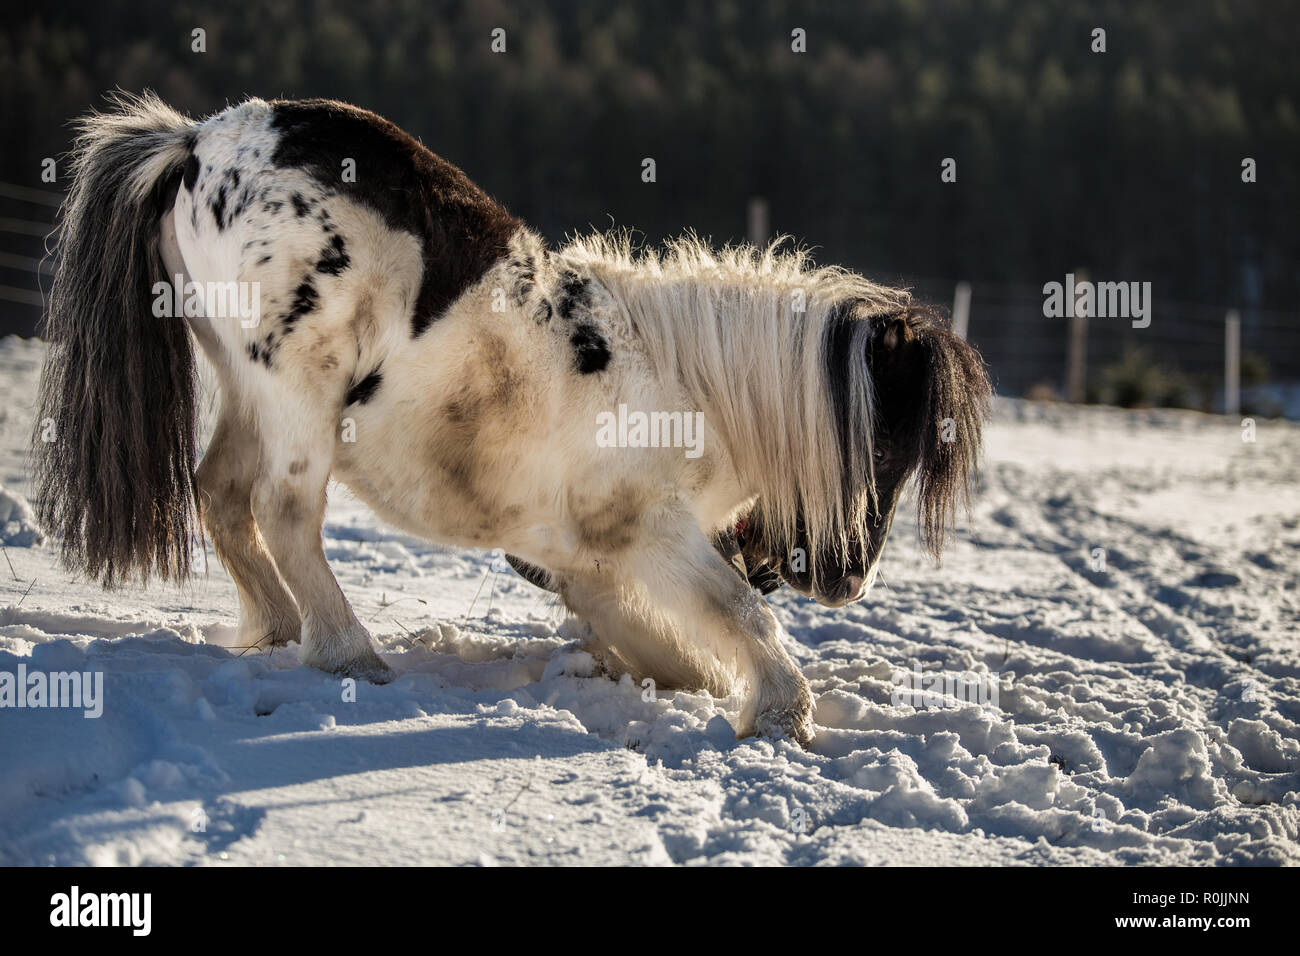 Black and white pony bowing in the snow - Stock Image